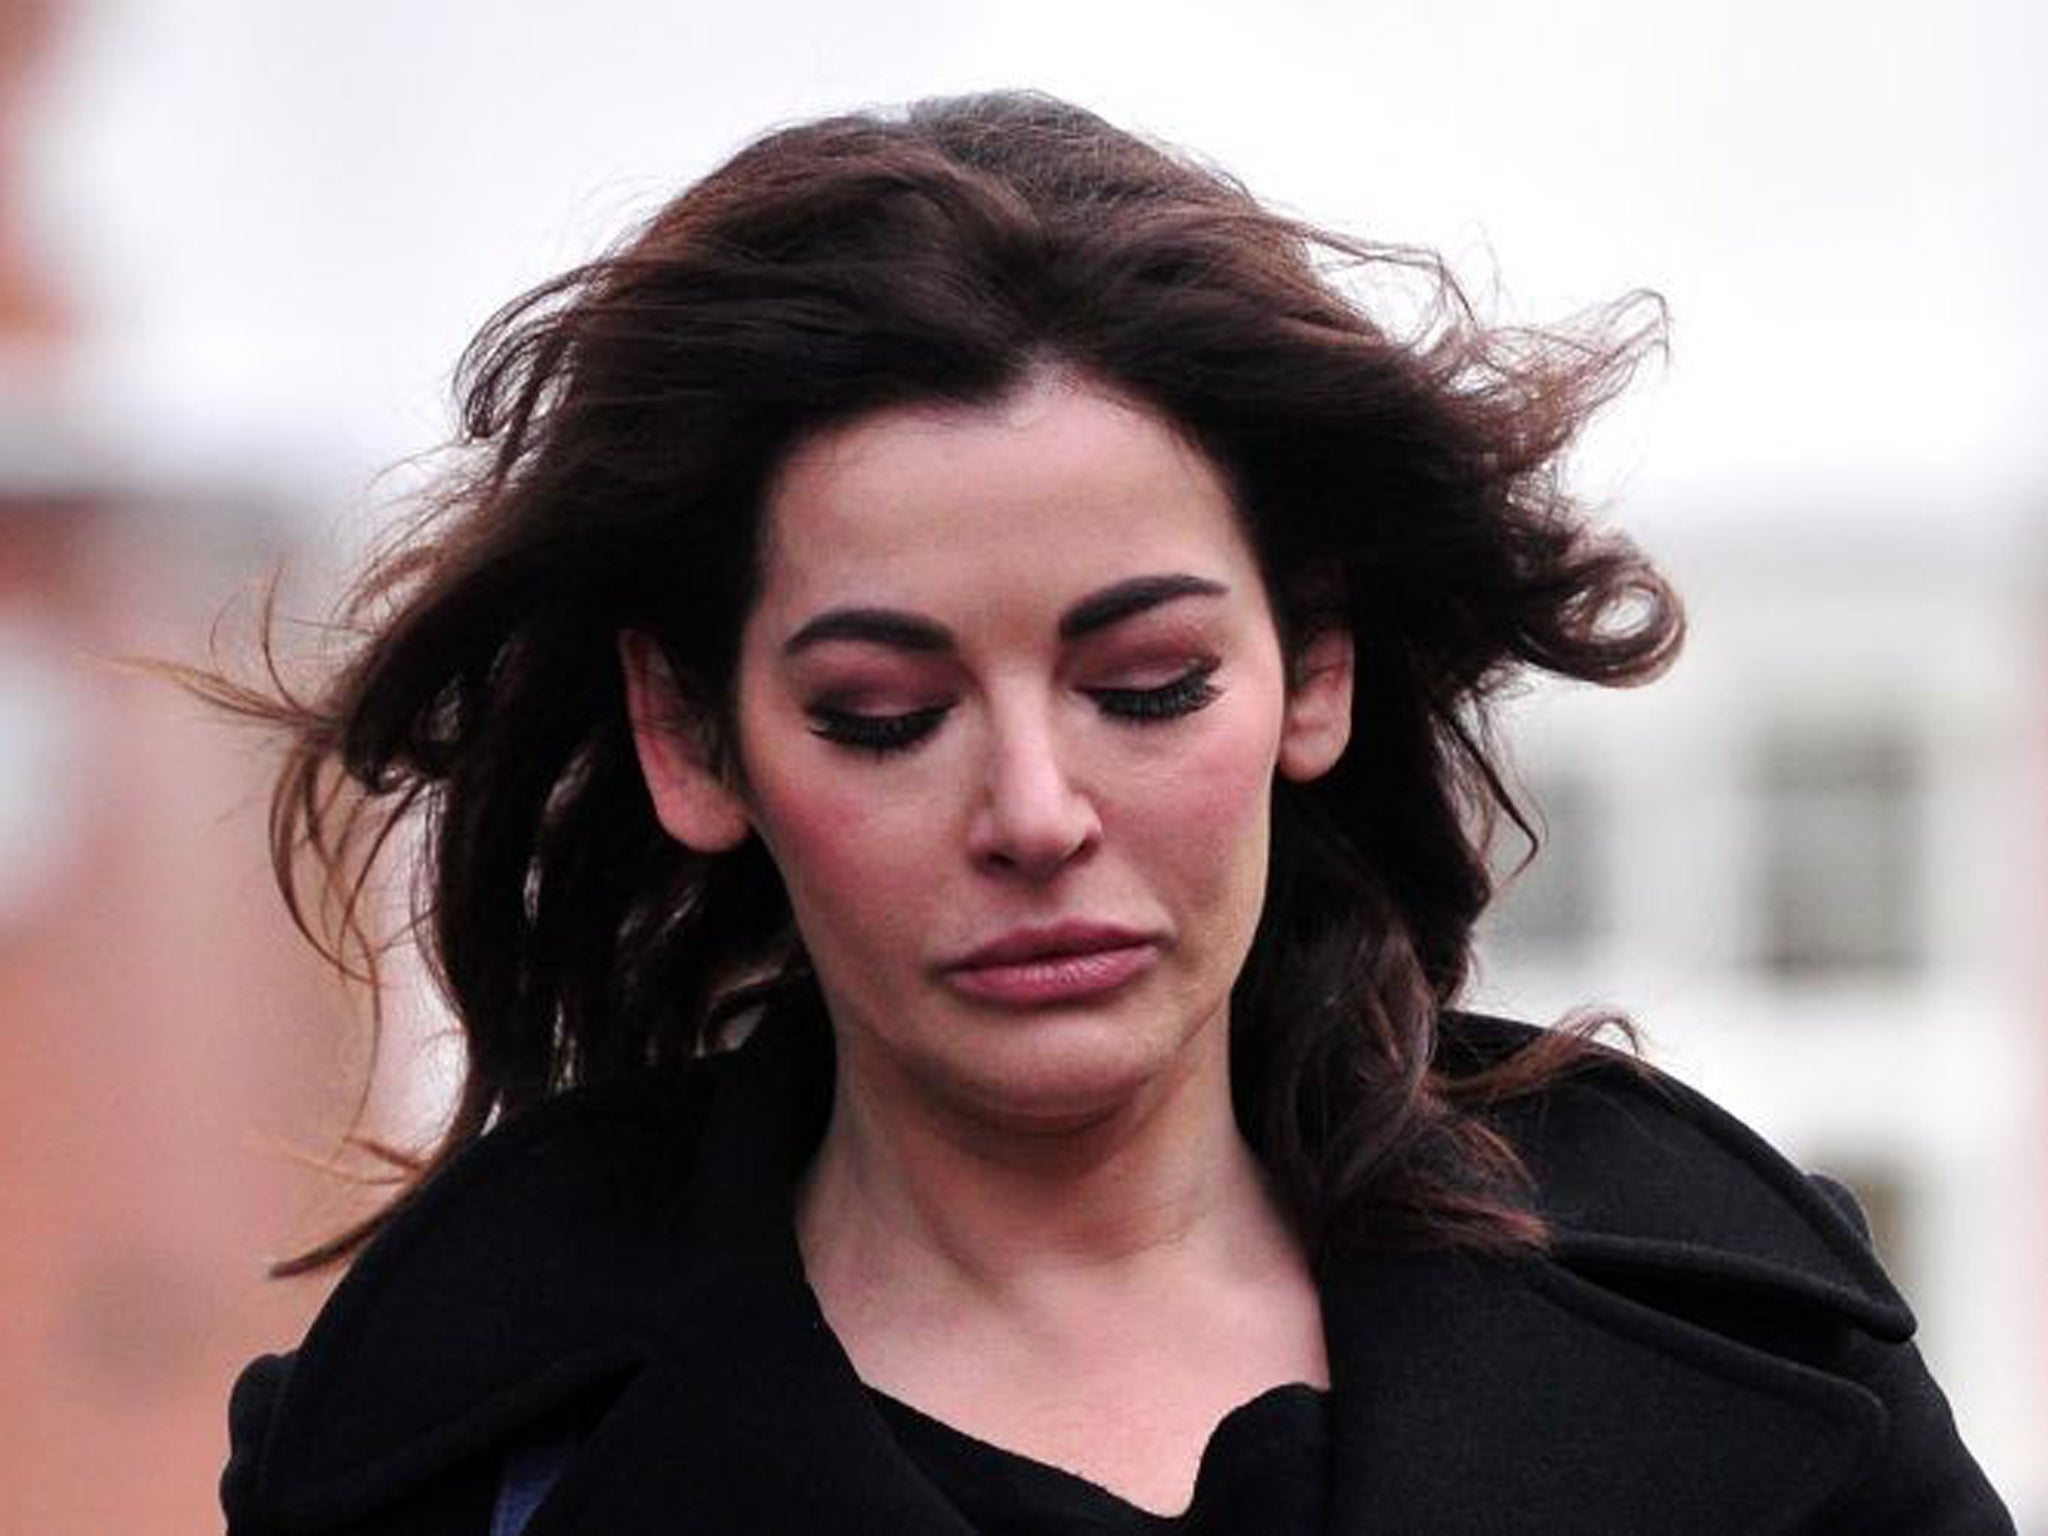 who is nigella dating now Three nigella wannabes (women who once had careers but now are overbearing helicopter mums) and hears.